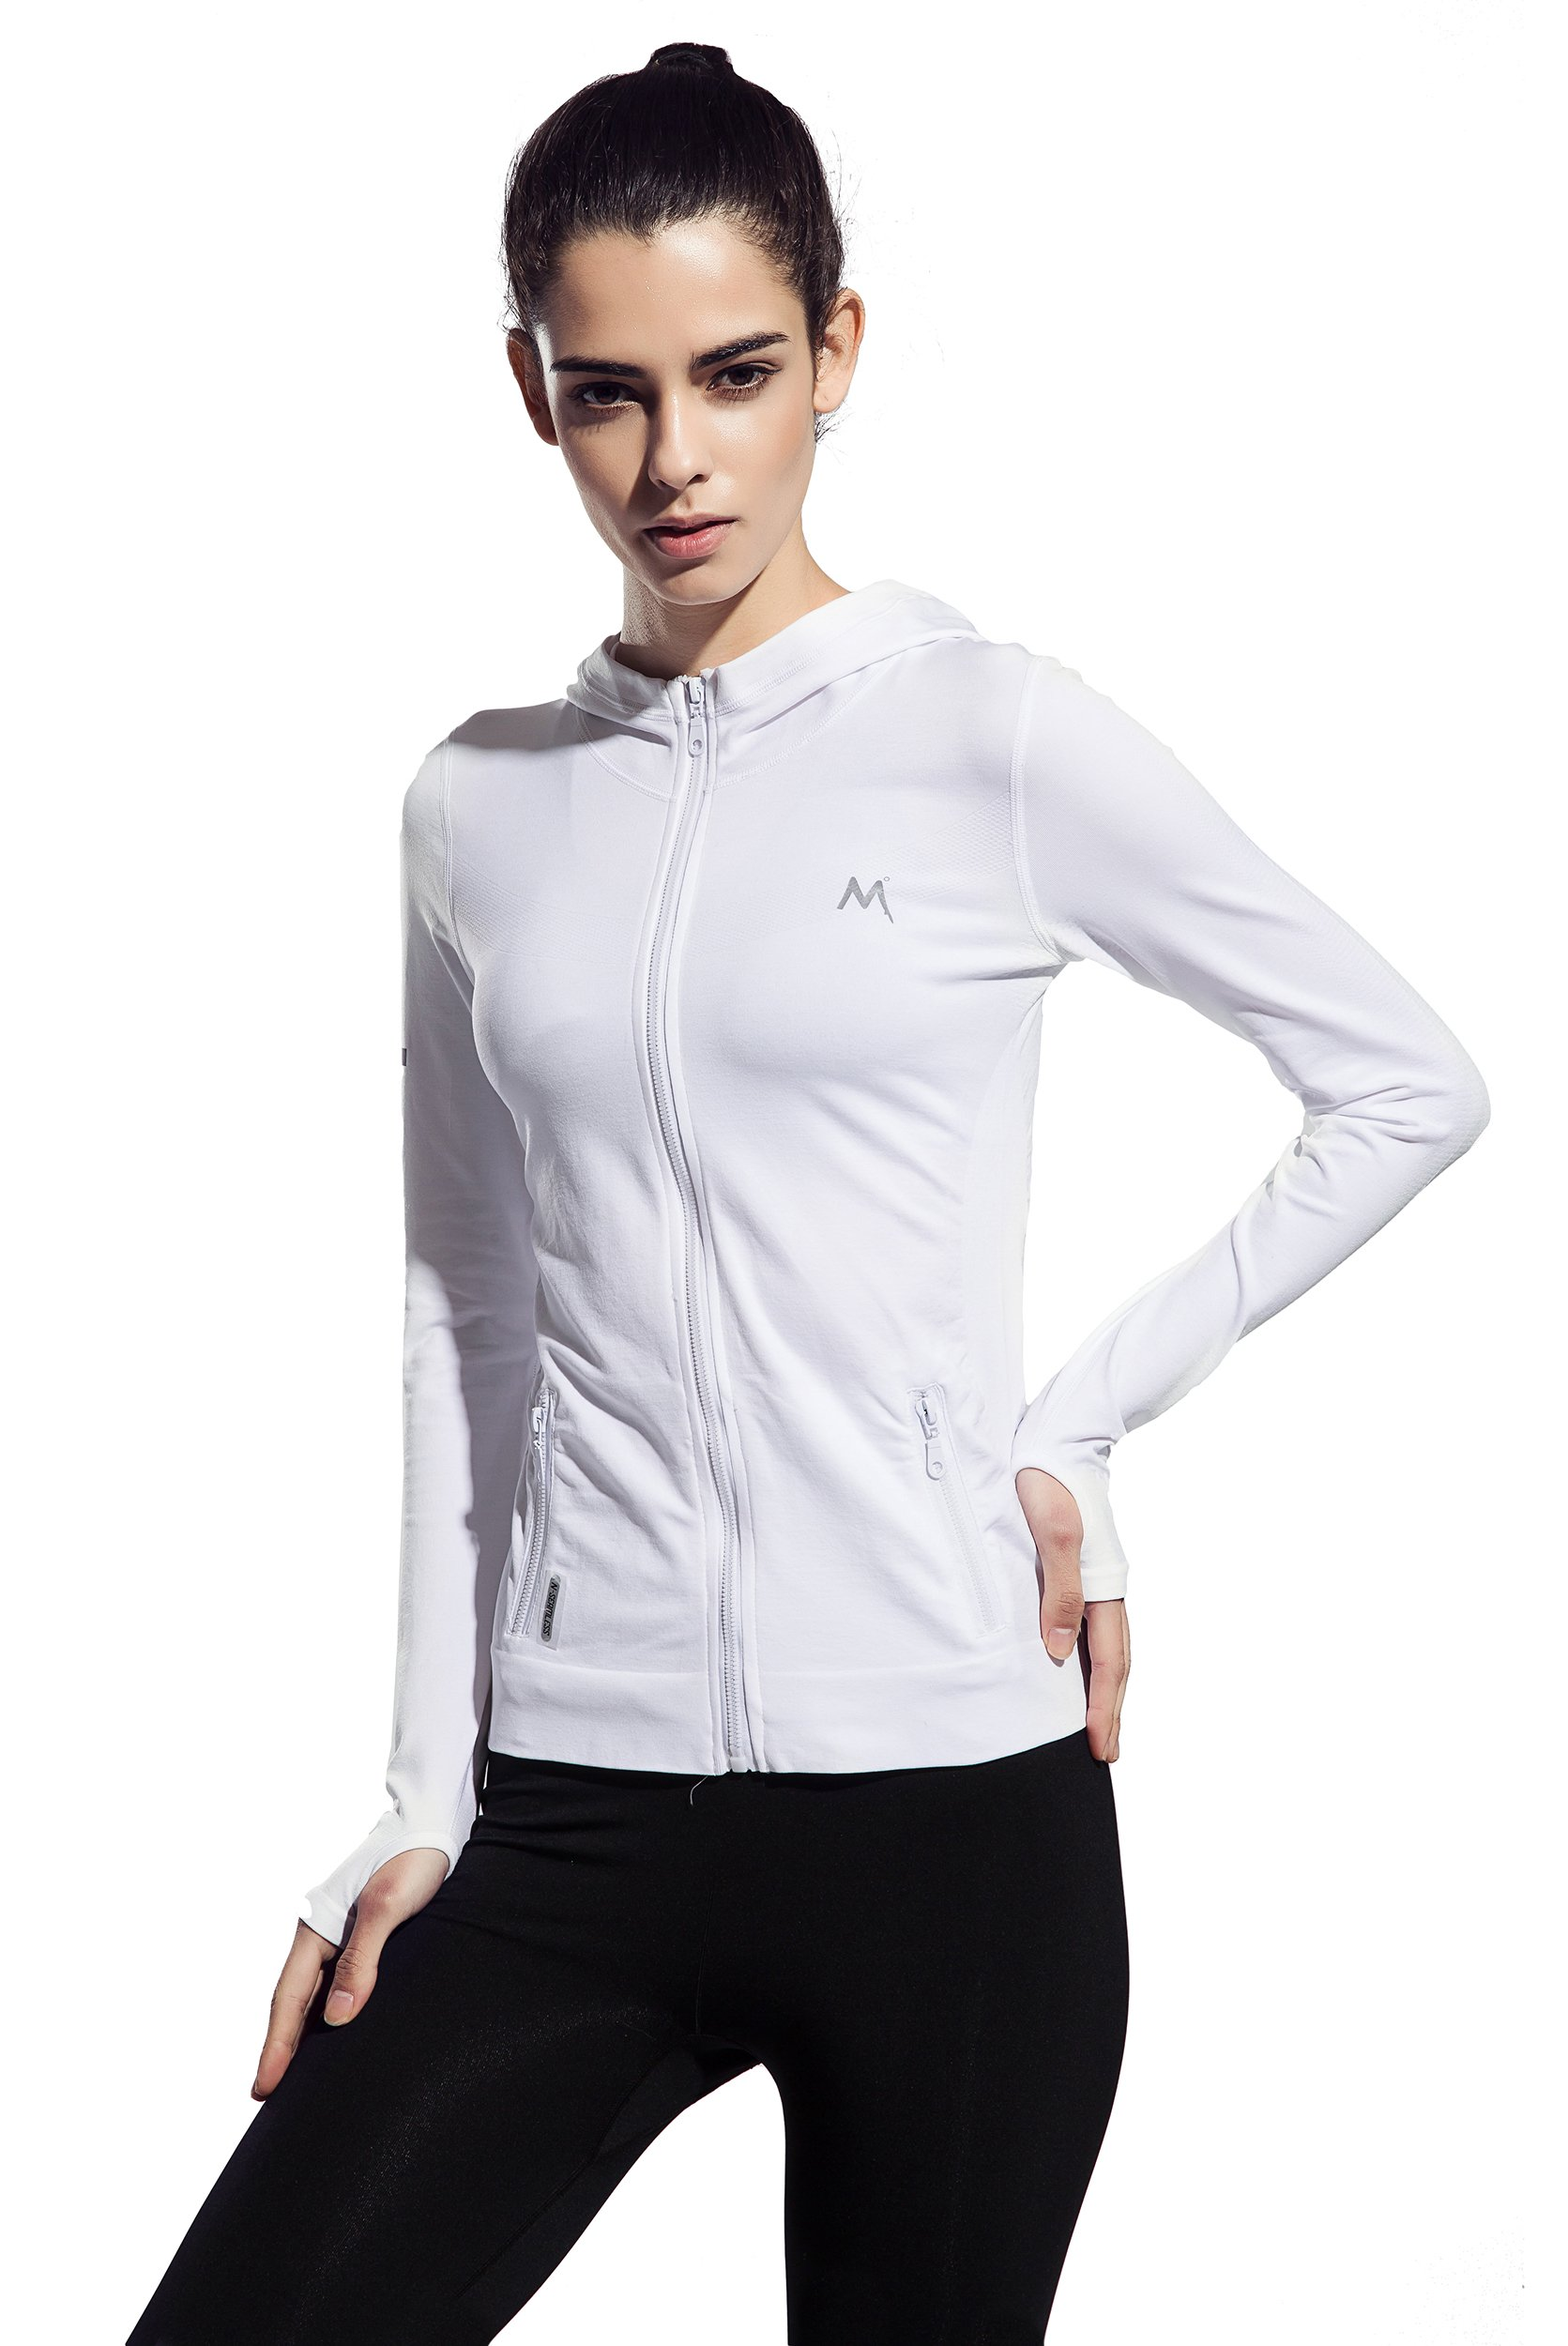 Women's Stretchy Workout Dri-Fit Hooded Jacket (White, l)